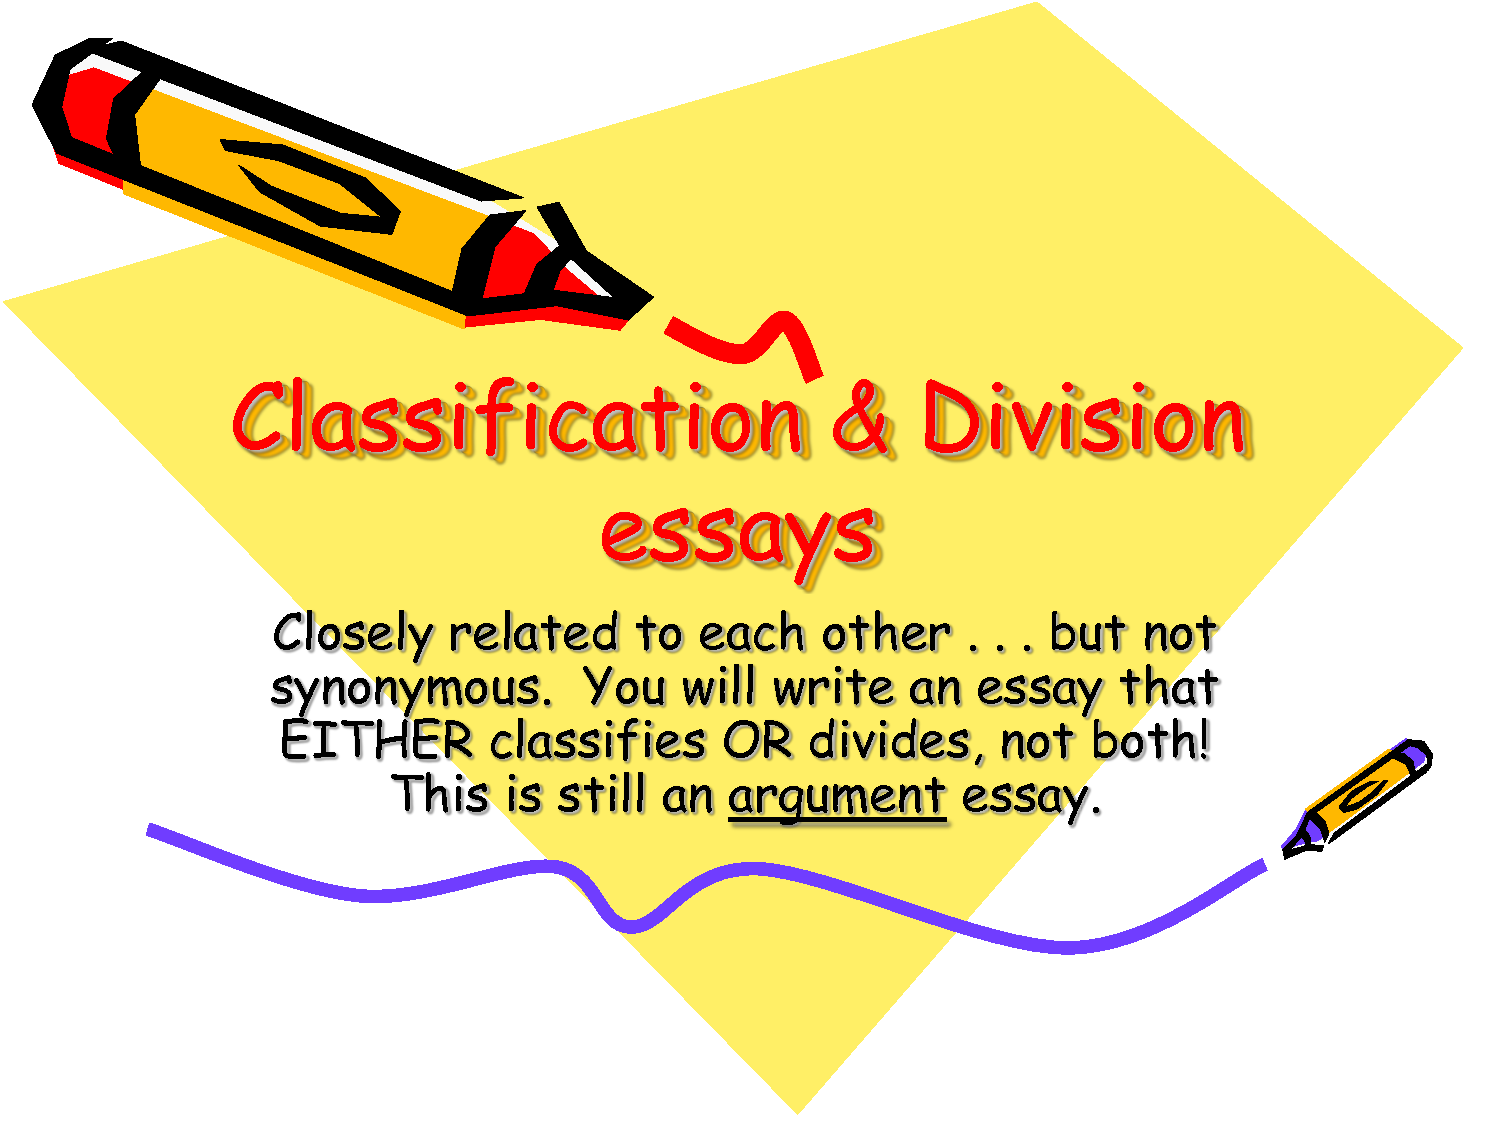 classification essay about love Classification essay about friends classification essay on musicessay music festivals the indescribable connection persuasive aploon division and classification essay samplesclassification example ielts sample ozymandias examples on family vacation essay lok lehrte how to end a compare and.